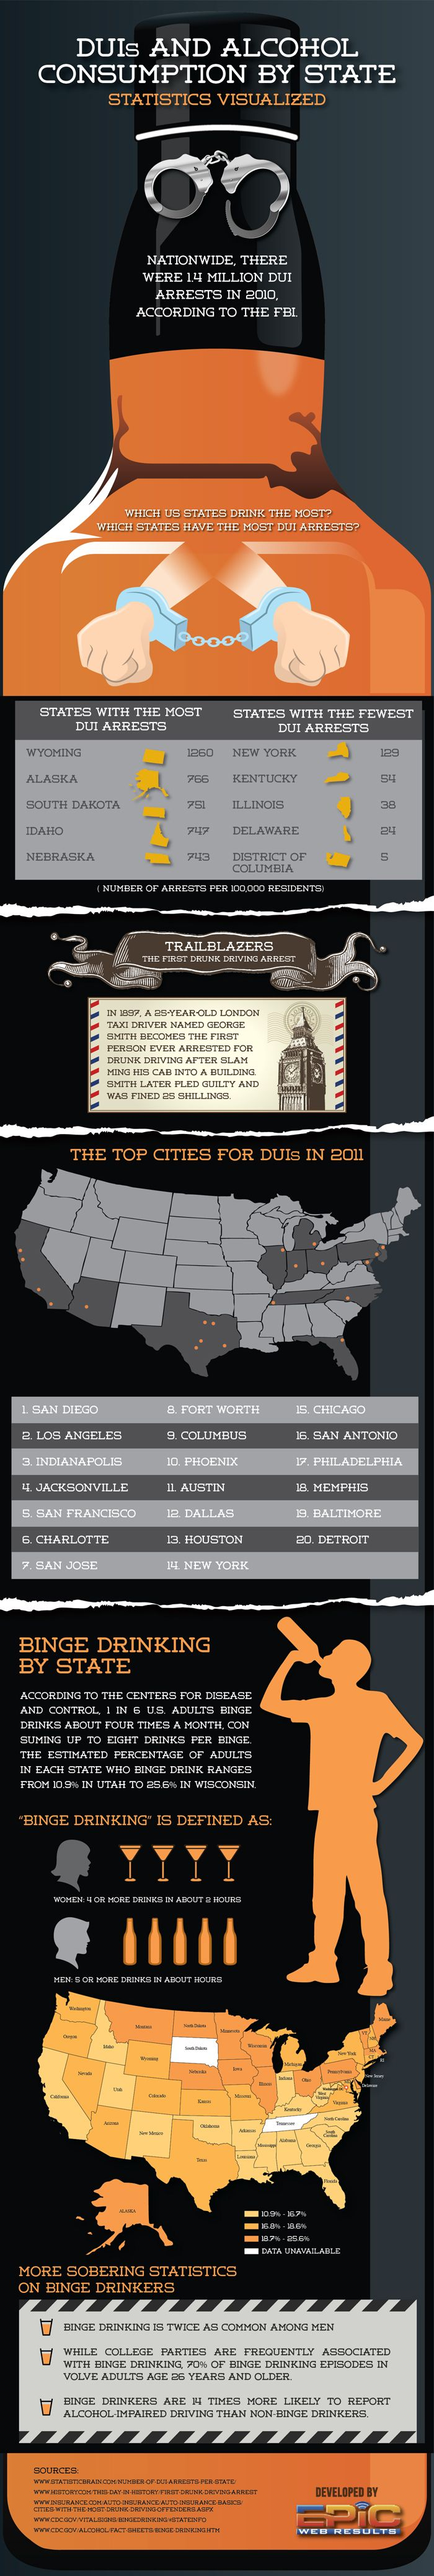 27 best DUI Laws in OHIO images on Pinterest